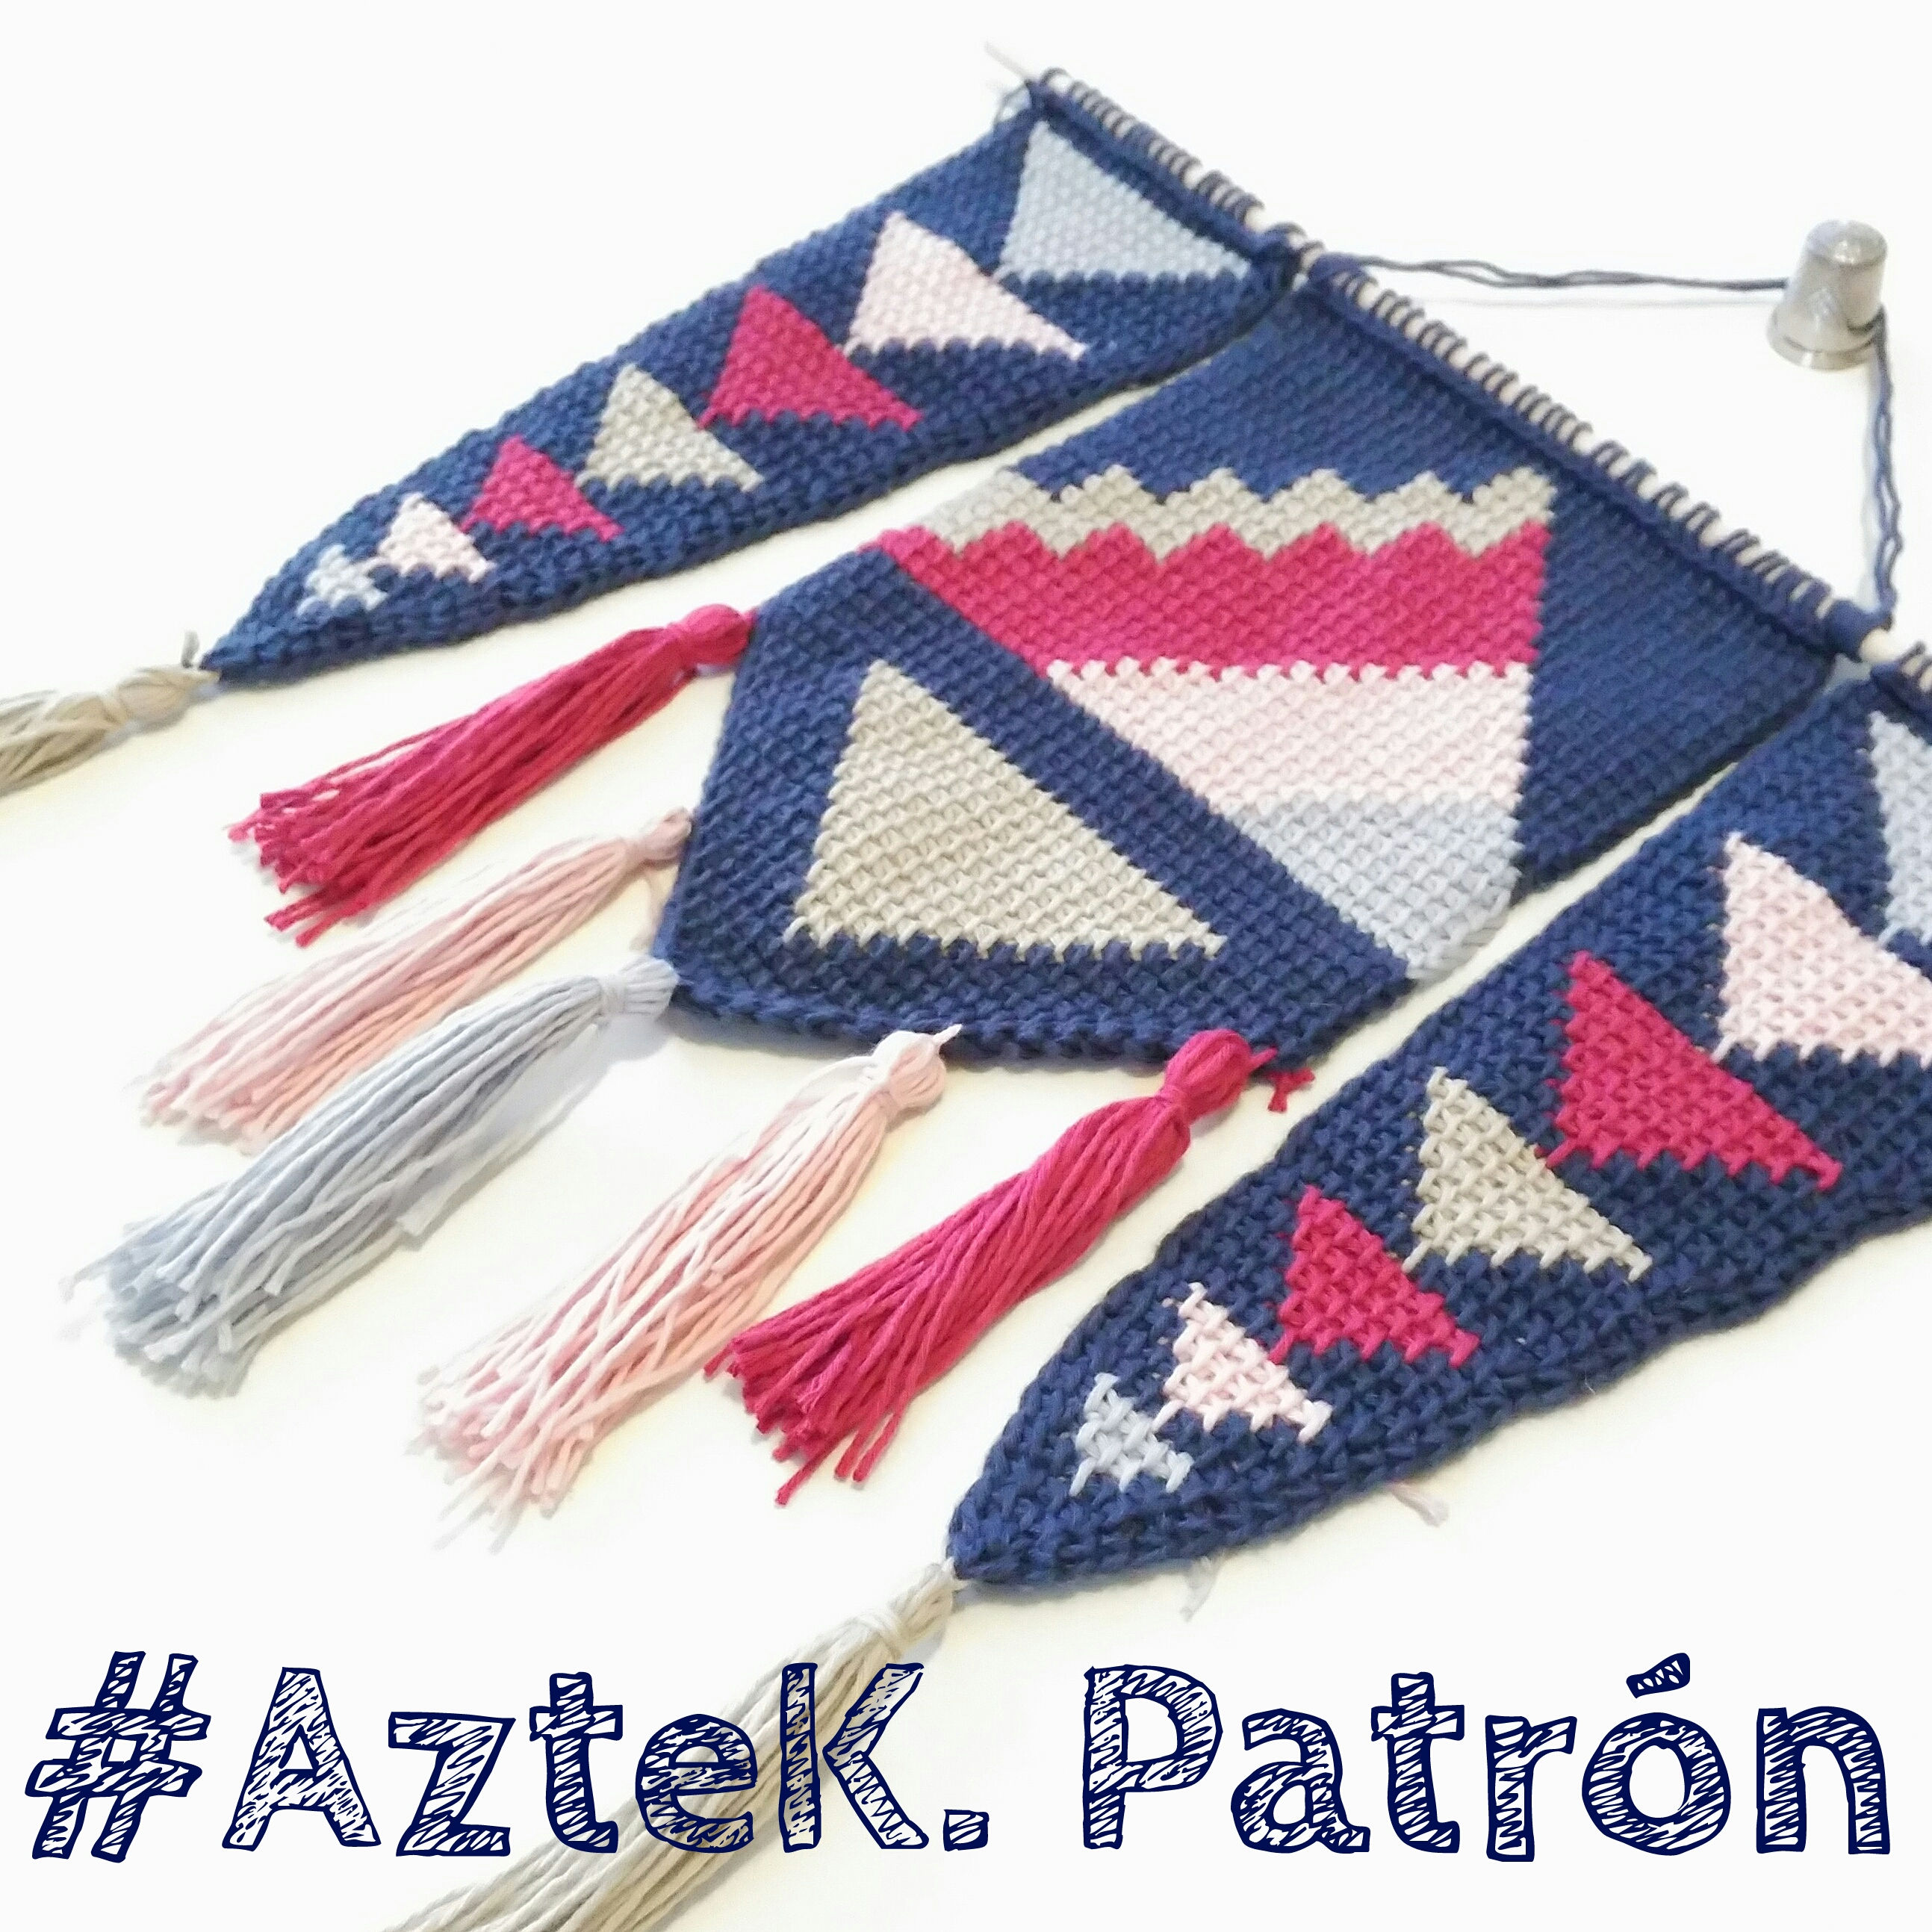 AzteK. Patrón en ganchillo tunecino - Sheep Days